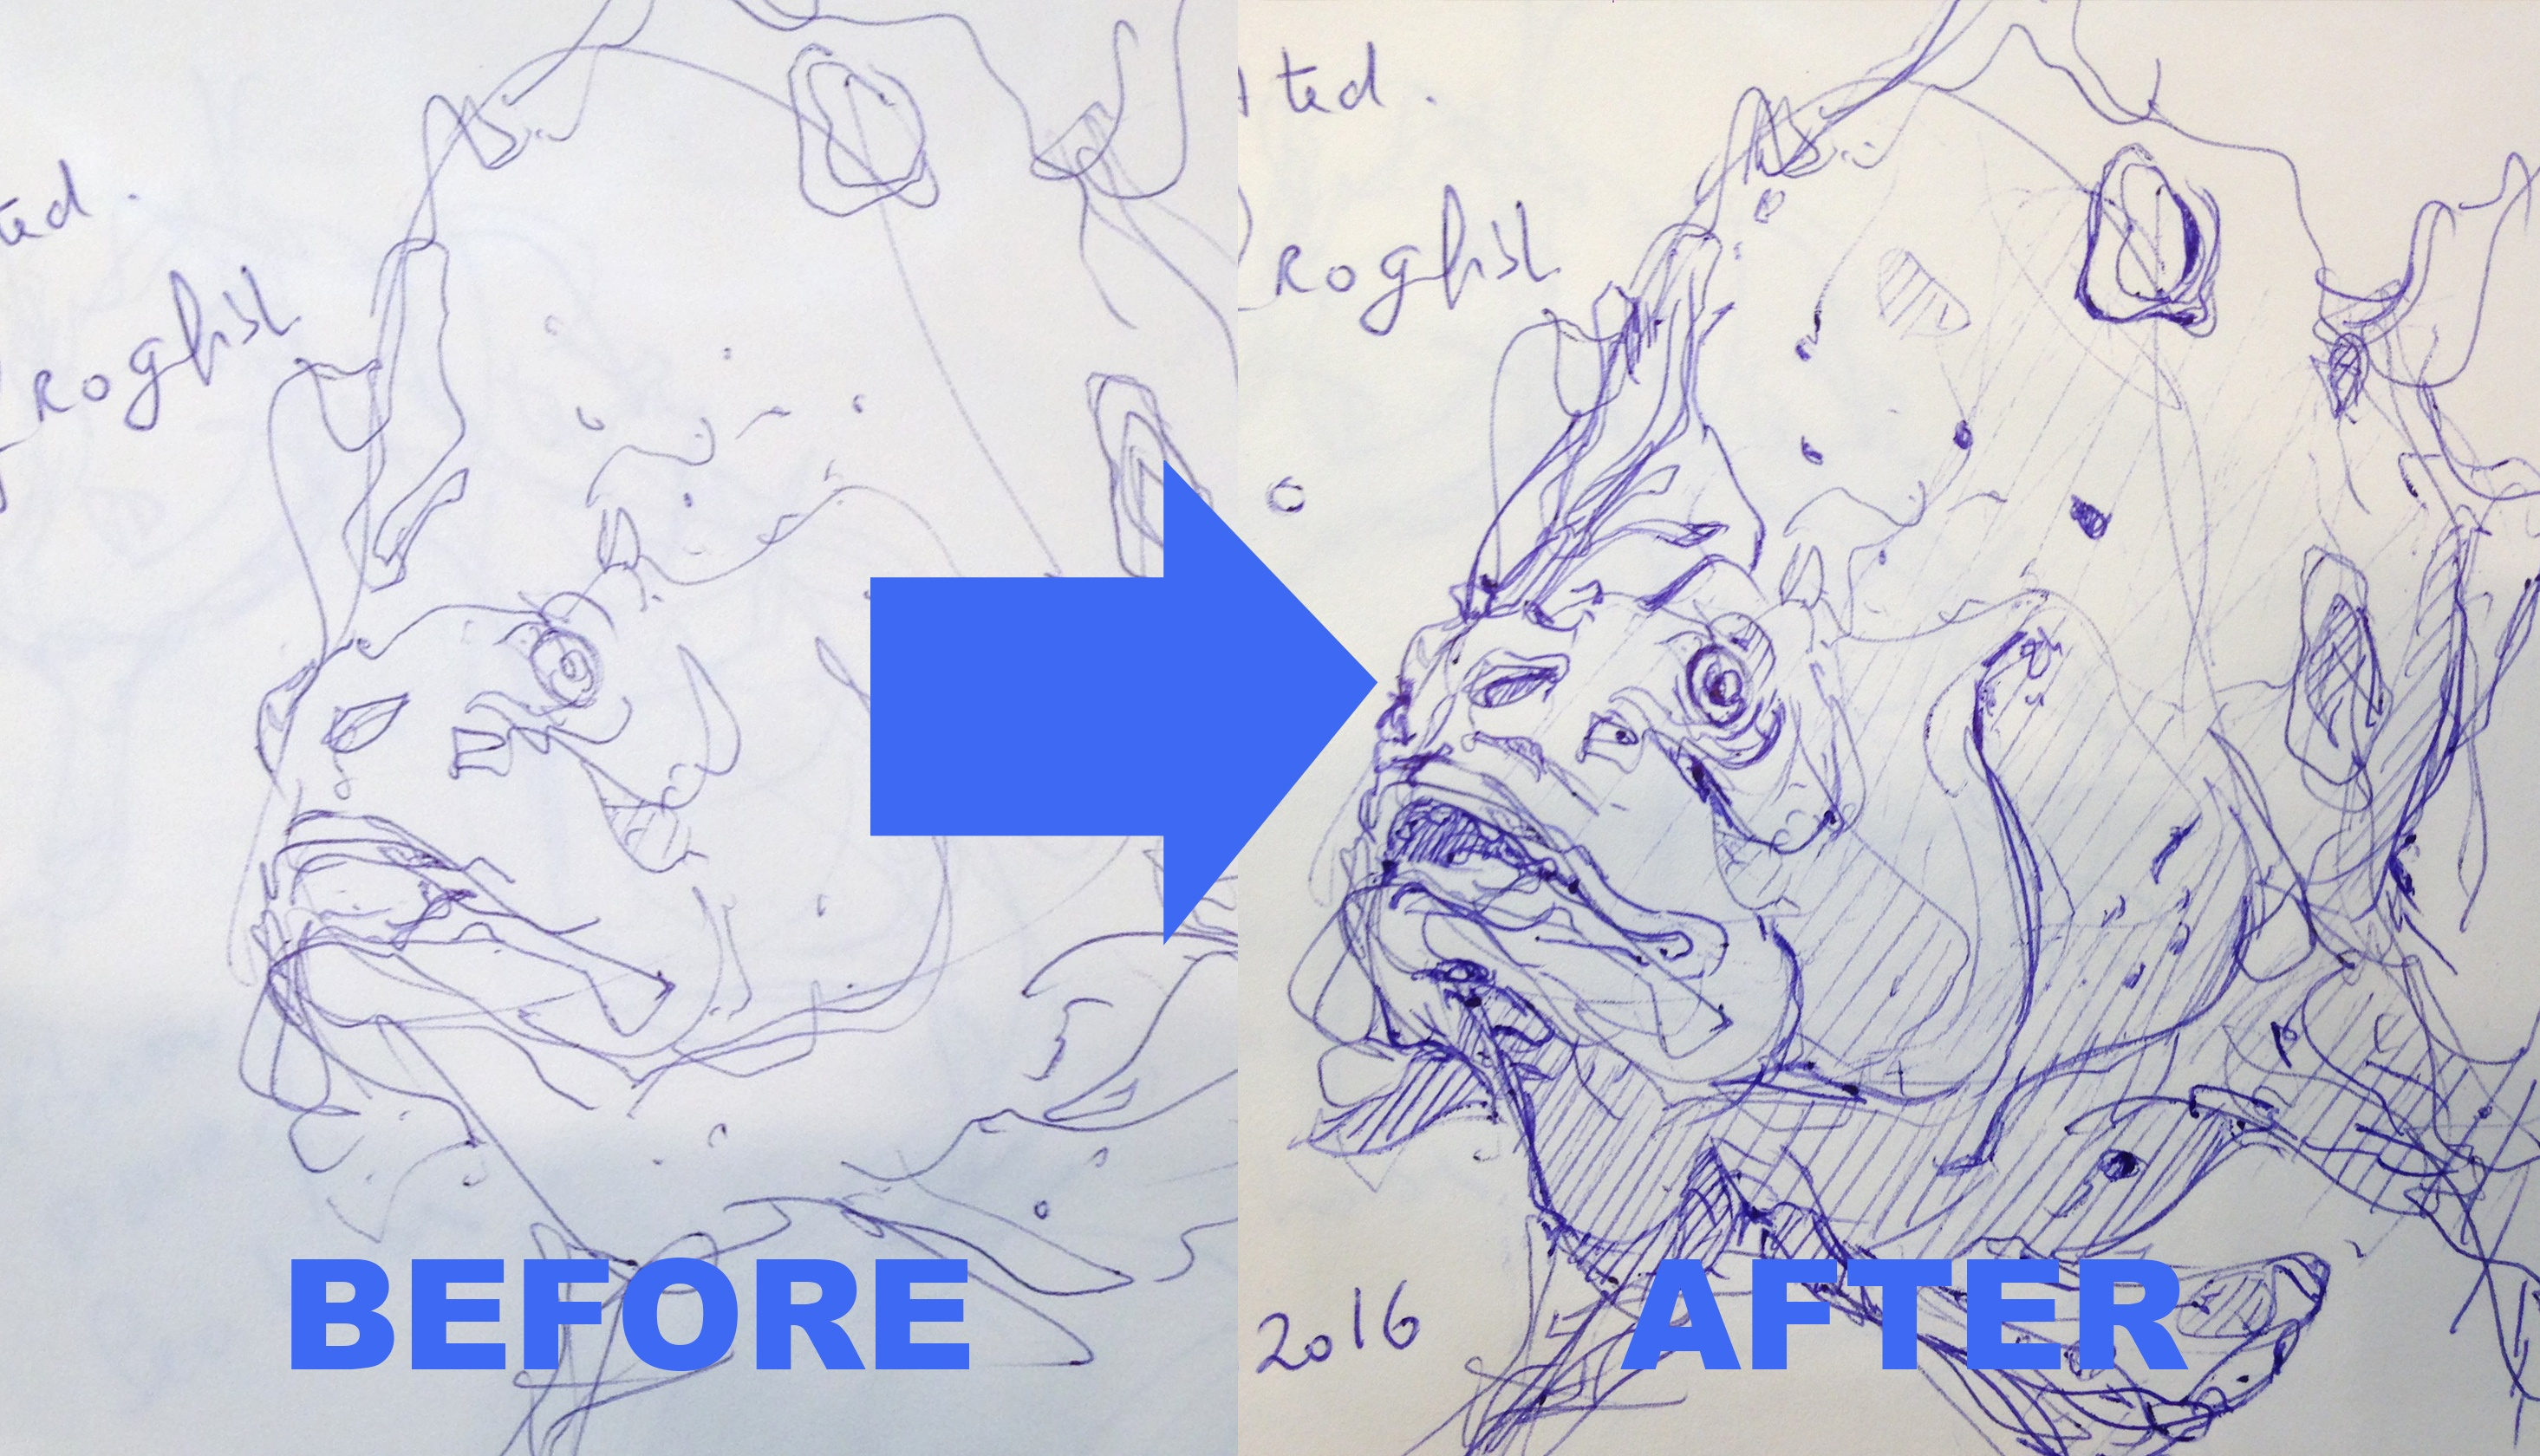 before after the design sketchbook sketch boston acquarium fish drawing ball point pen blue bic copy